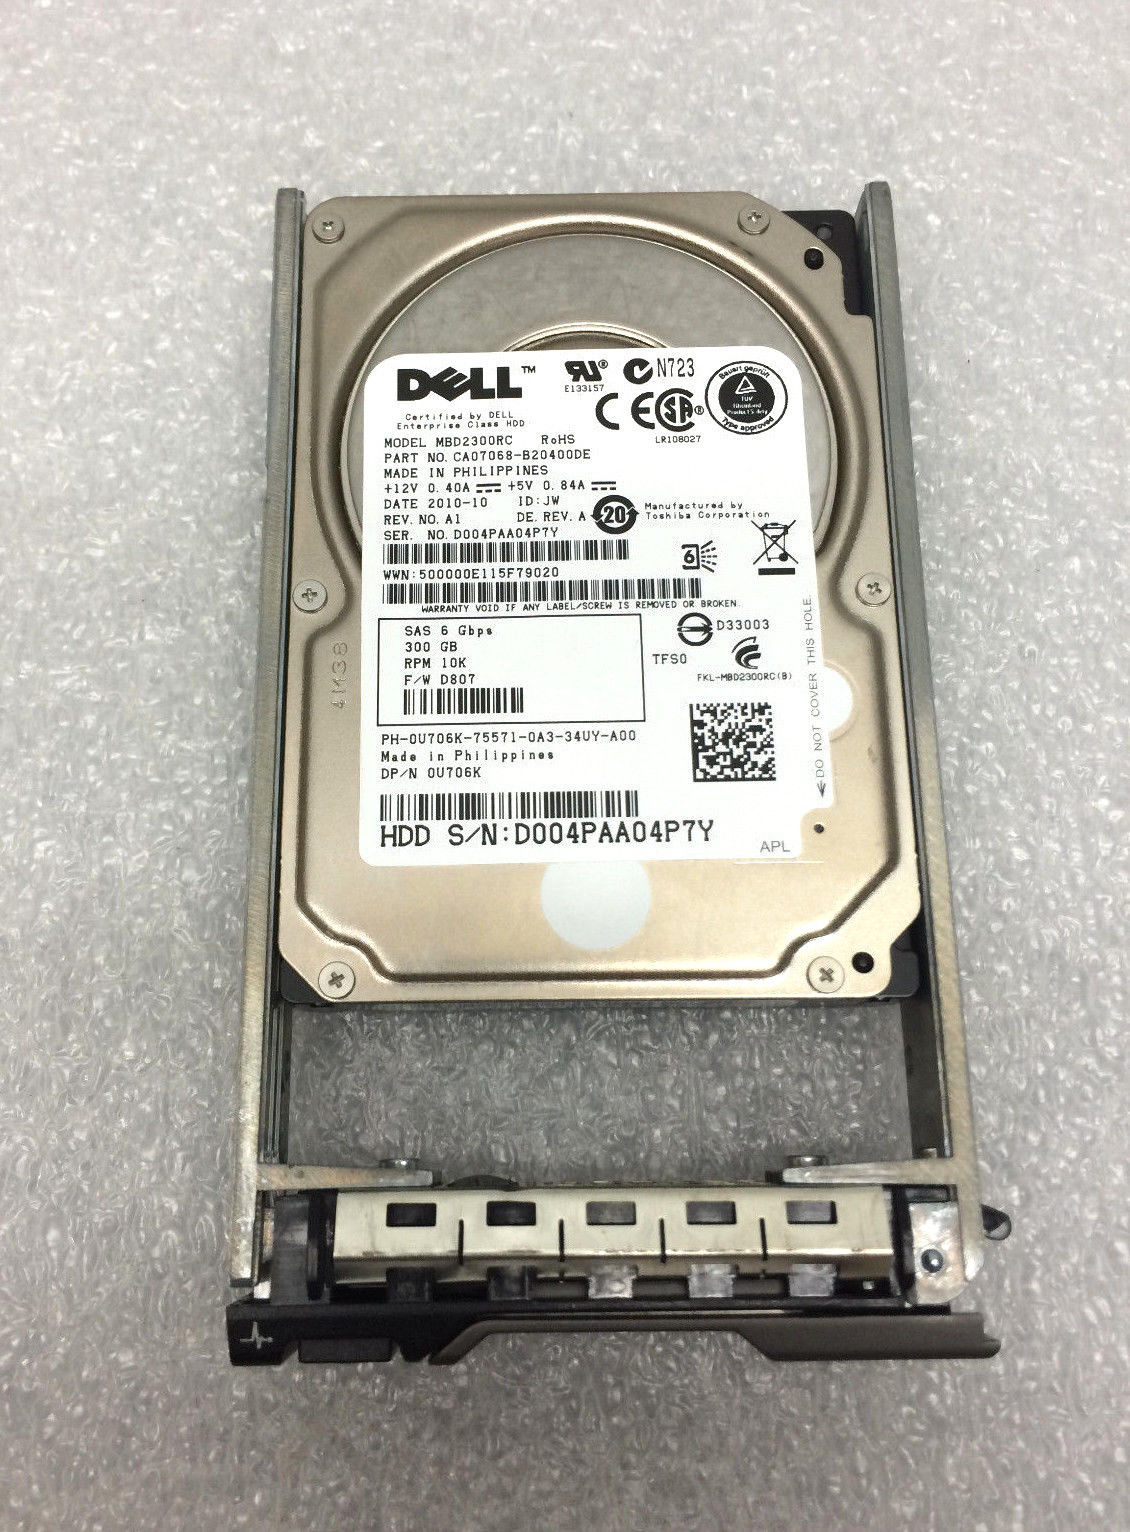 Dell U706K 300GB 10K 2.5 SAS 6GBPS HDD